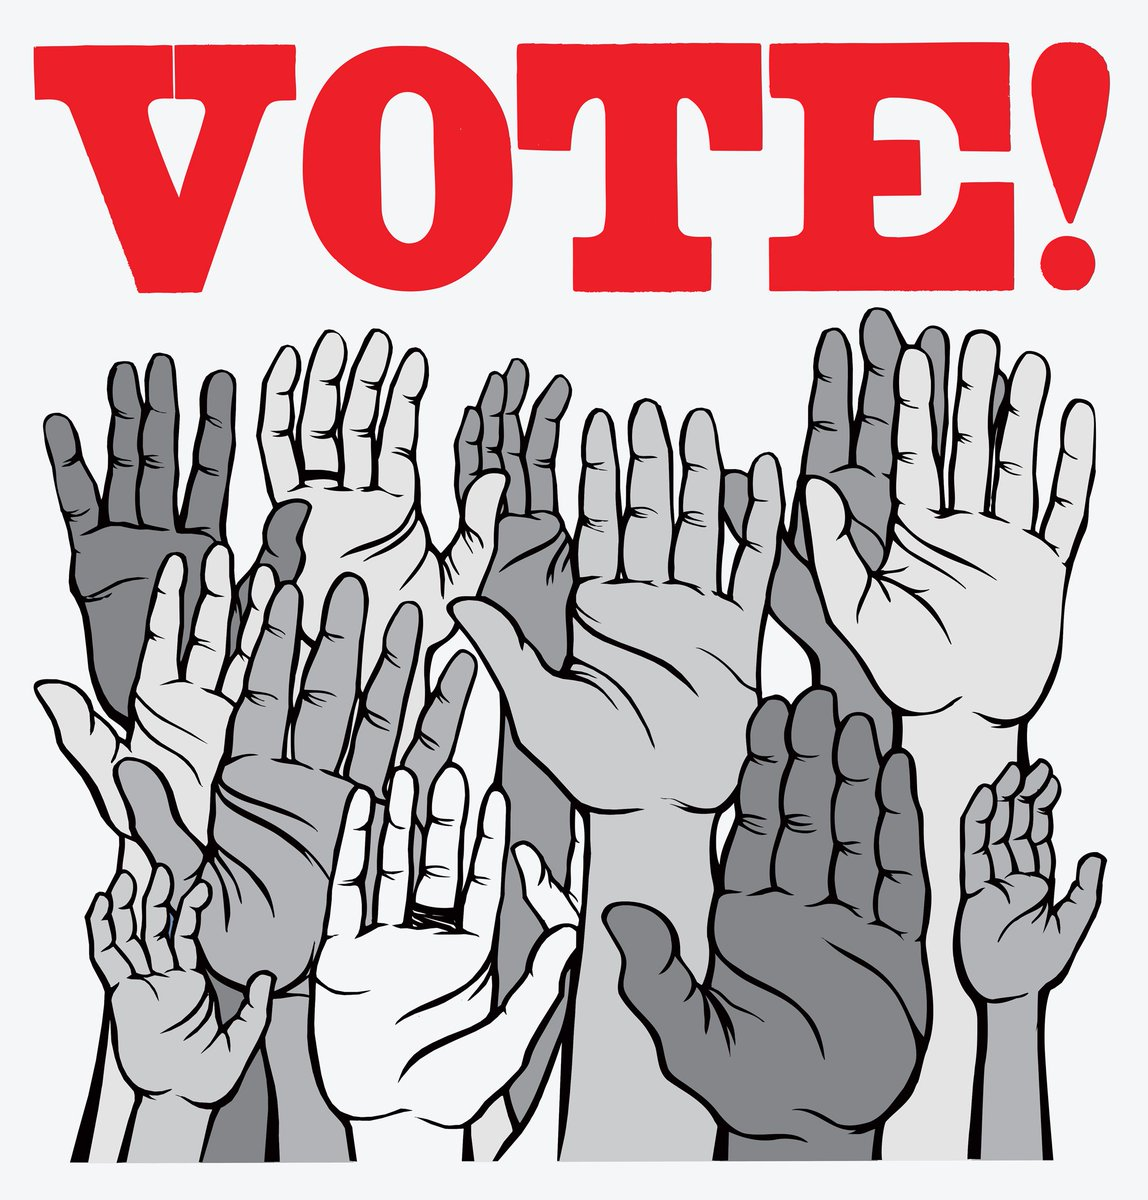 homeless people should register to vote and vote When you register to vote, you must provide your current residence this is the  place where you sleep, so if you sleep in a shelter, at a friend's house, or outside .